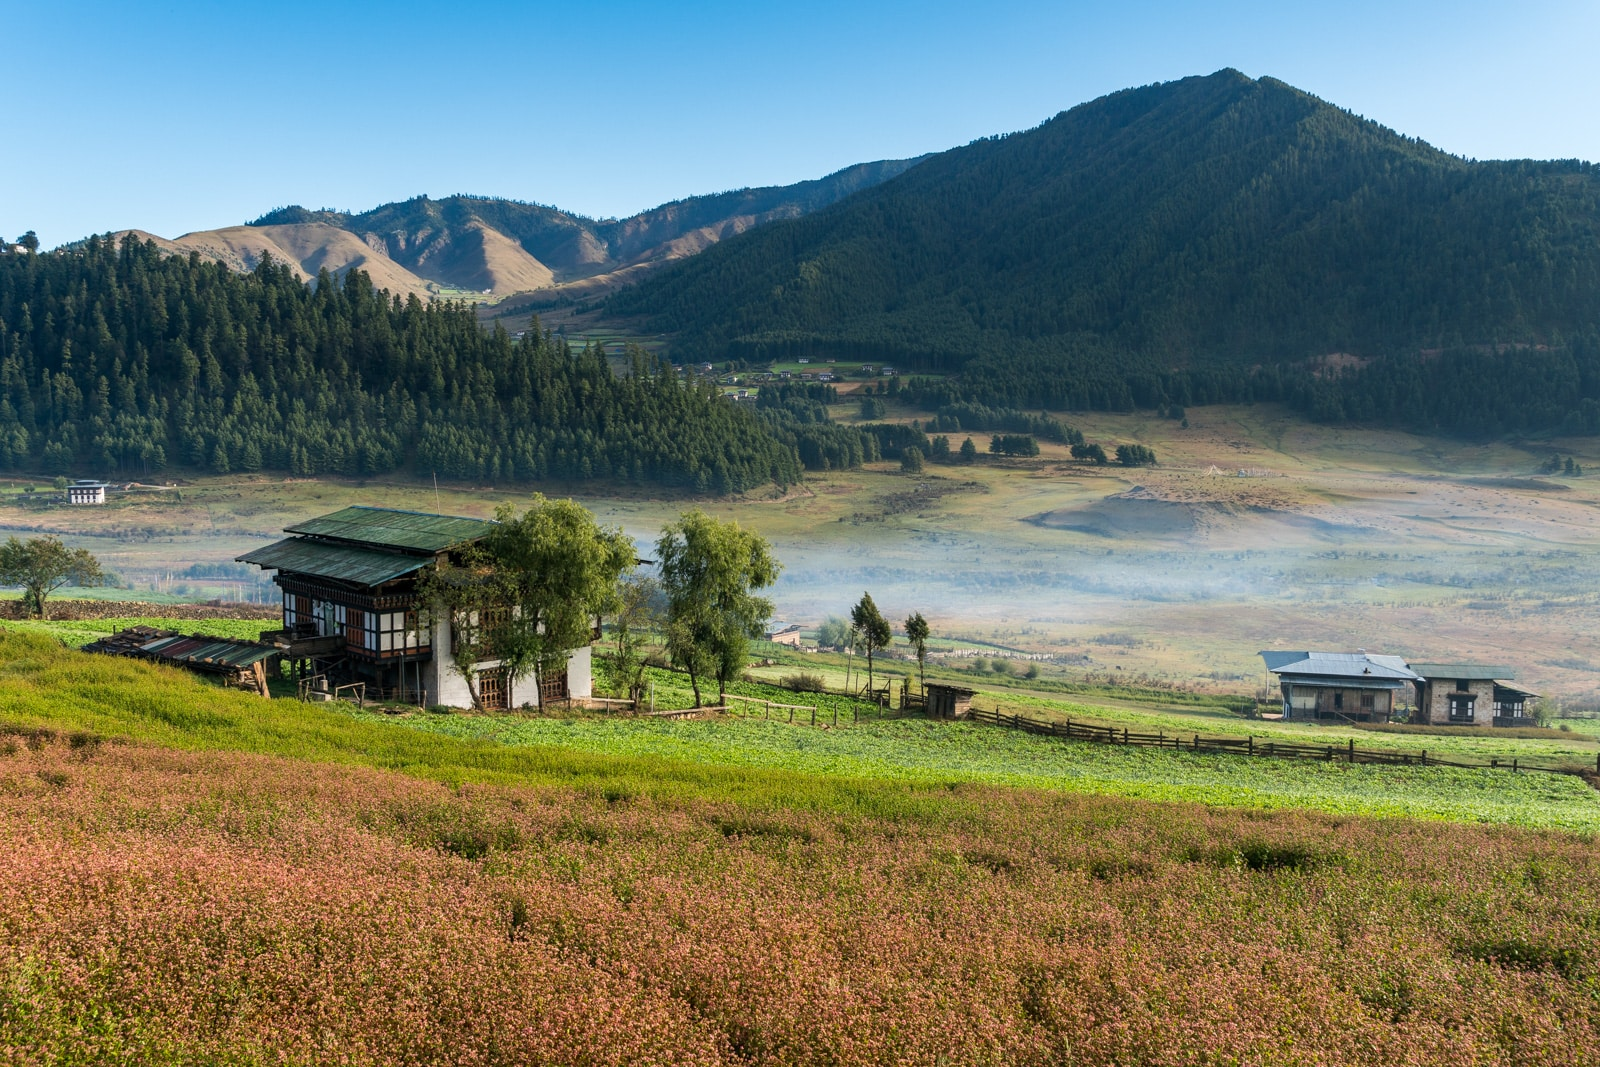 Stunning photos of Bhutan - Farmhouse in Phobjikha Valley - Lost WIth Purpose travel blog